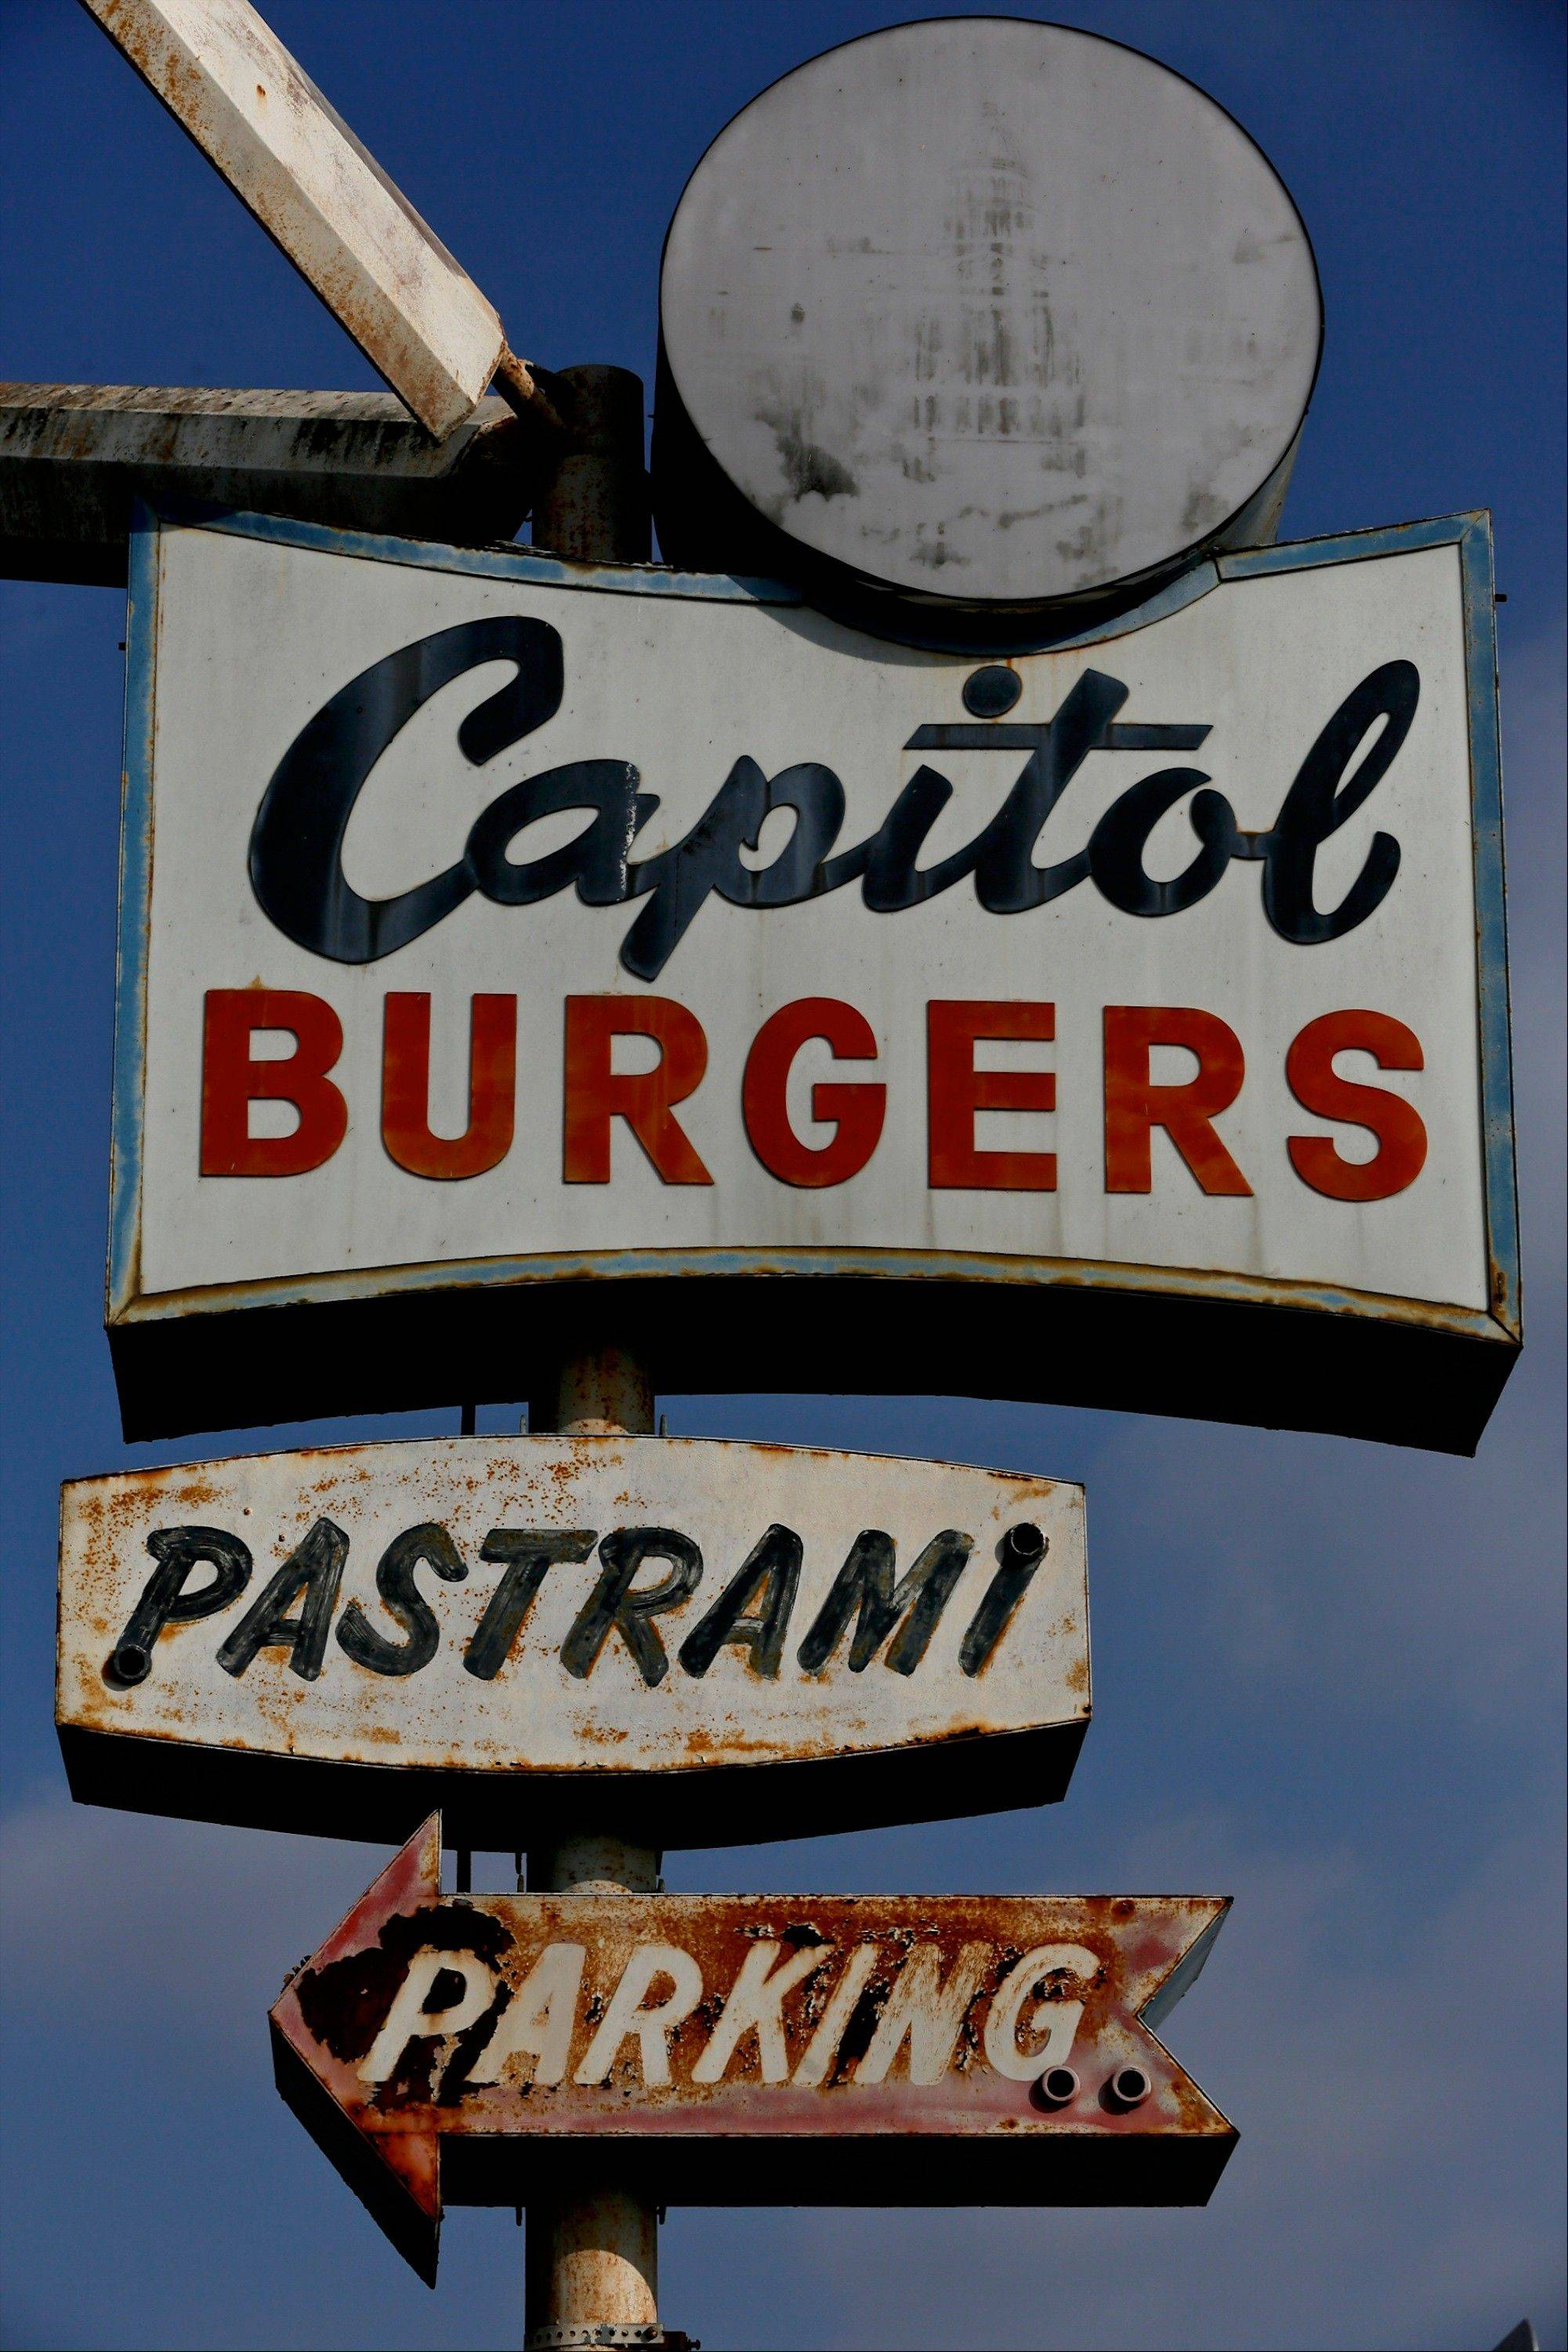 Capitol Burgers, an old-school hamburger stand in a not-so-glitzy part of town, has been dishing out unadulterated burgers and fries since 1965. Capitol owner George Stamos was crafting burgers for folks their way, right away. Stamos died earlier this year, but his family has kept the griddle fired up in honor of their patriarch who originally immigrated to the United States from Greece.